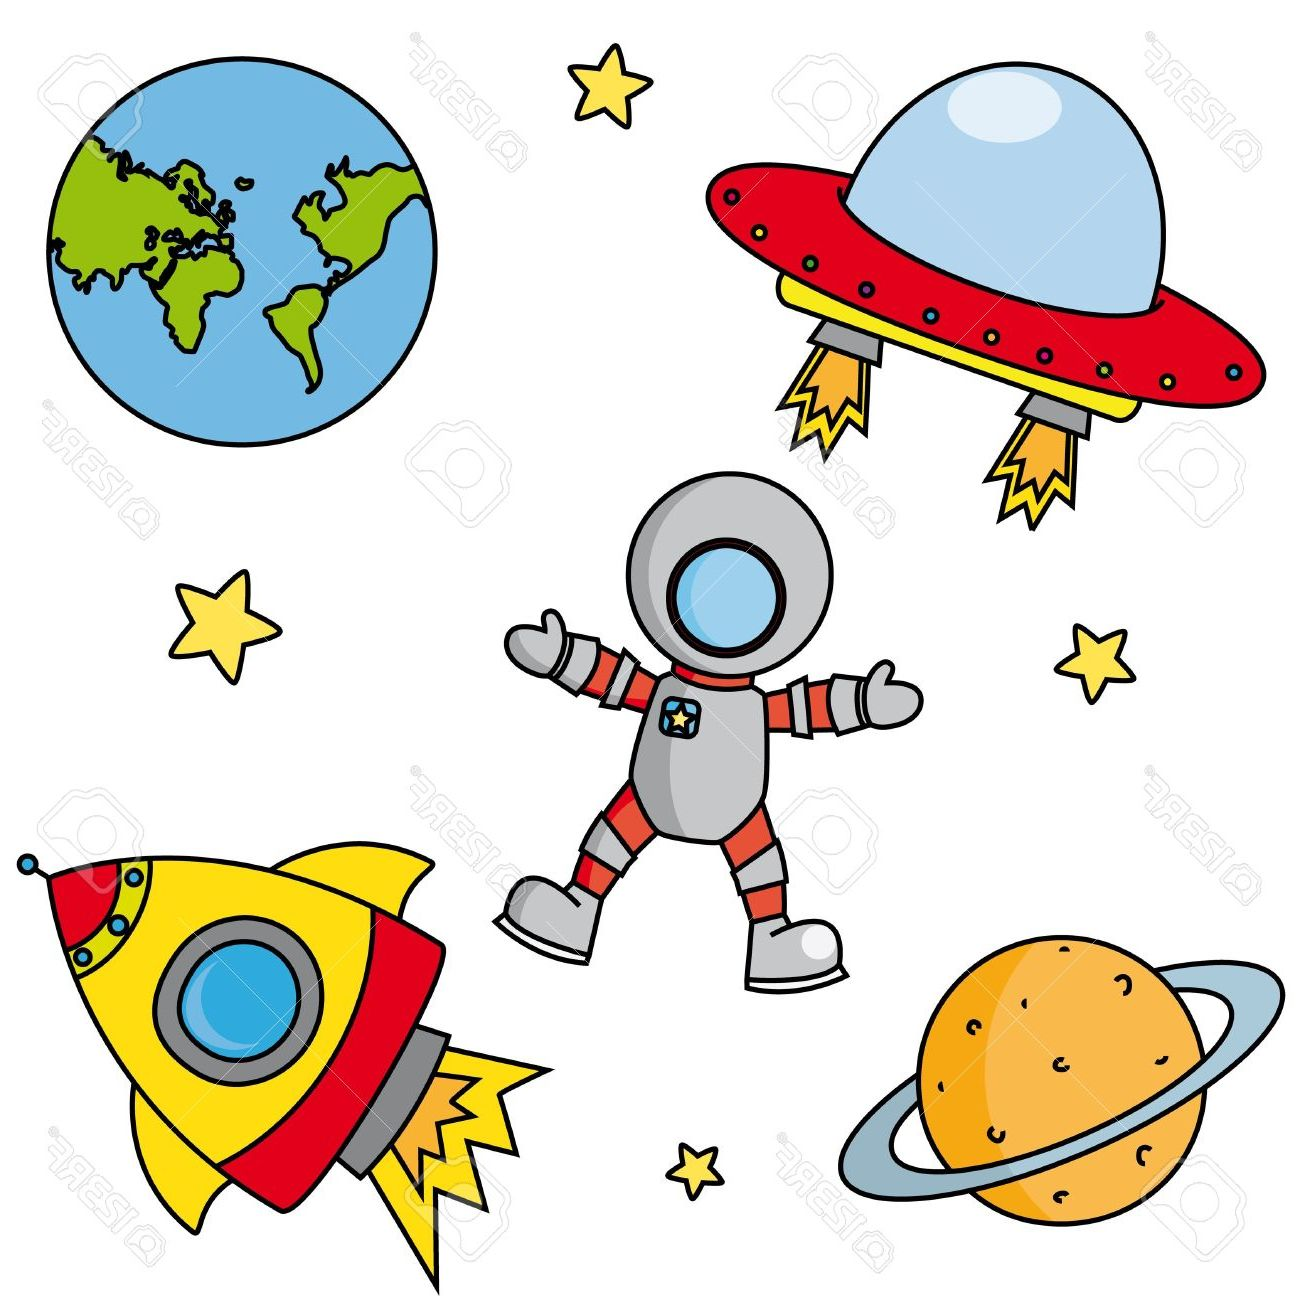 Astronomy Clipart at GetDrawings.com.